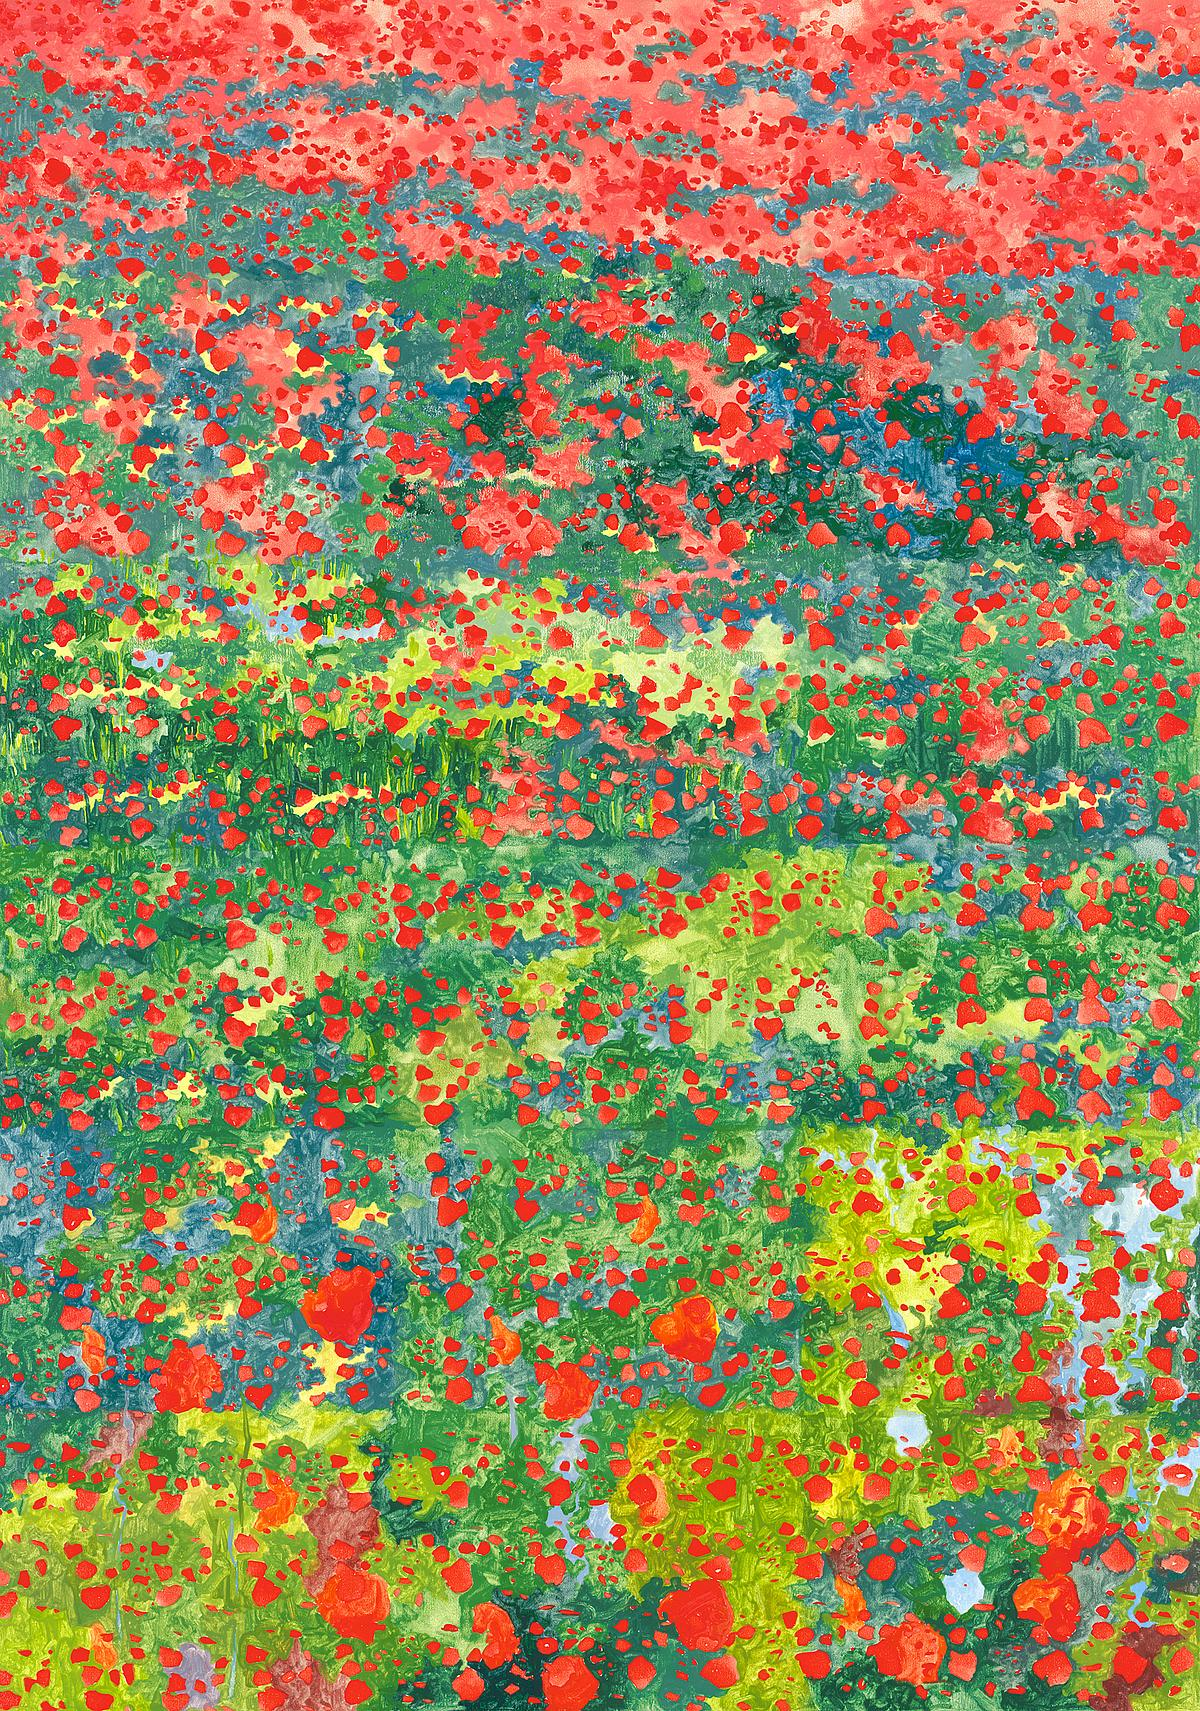 Poppies, L Glover, 2014, SOLD